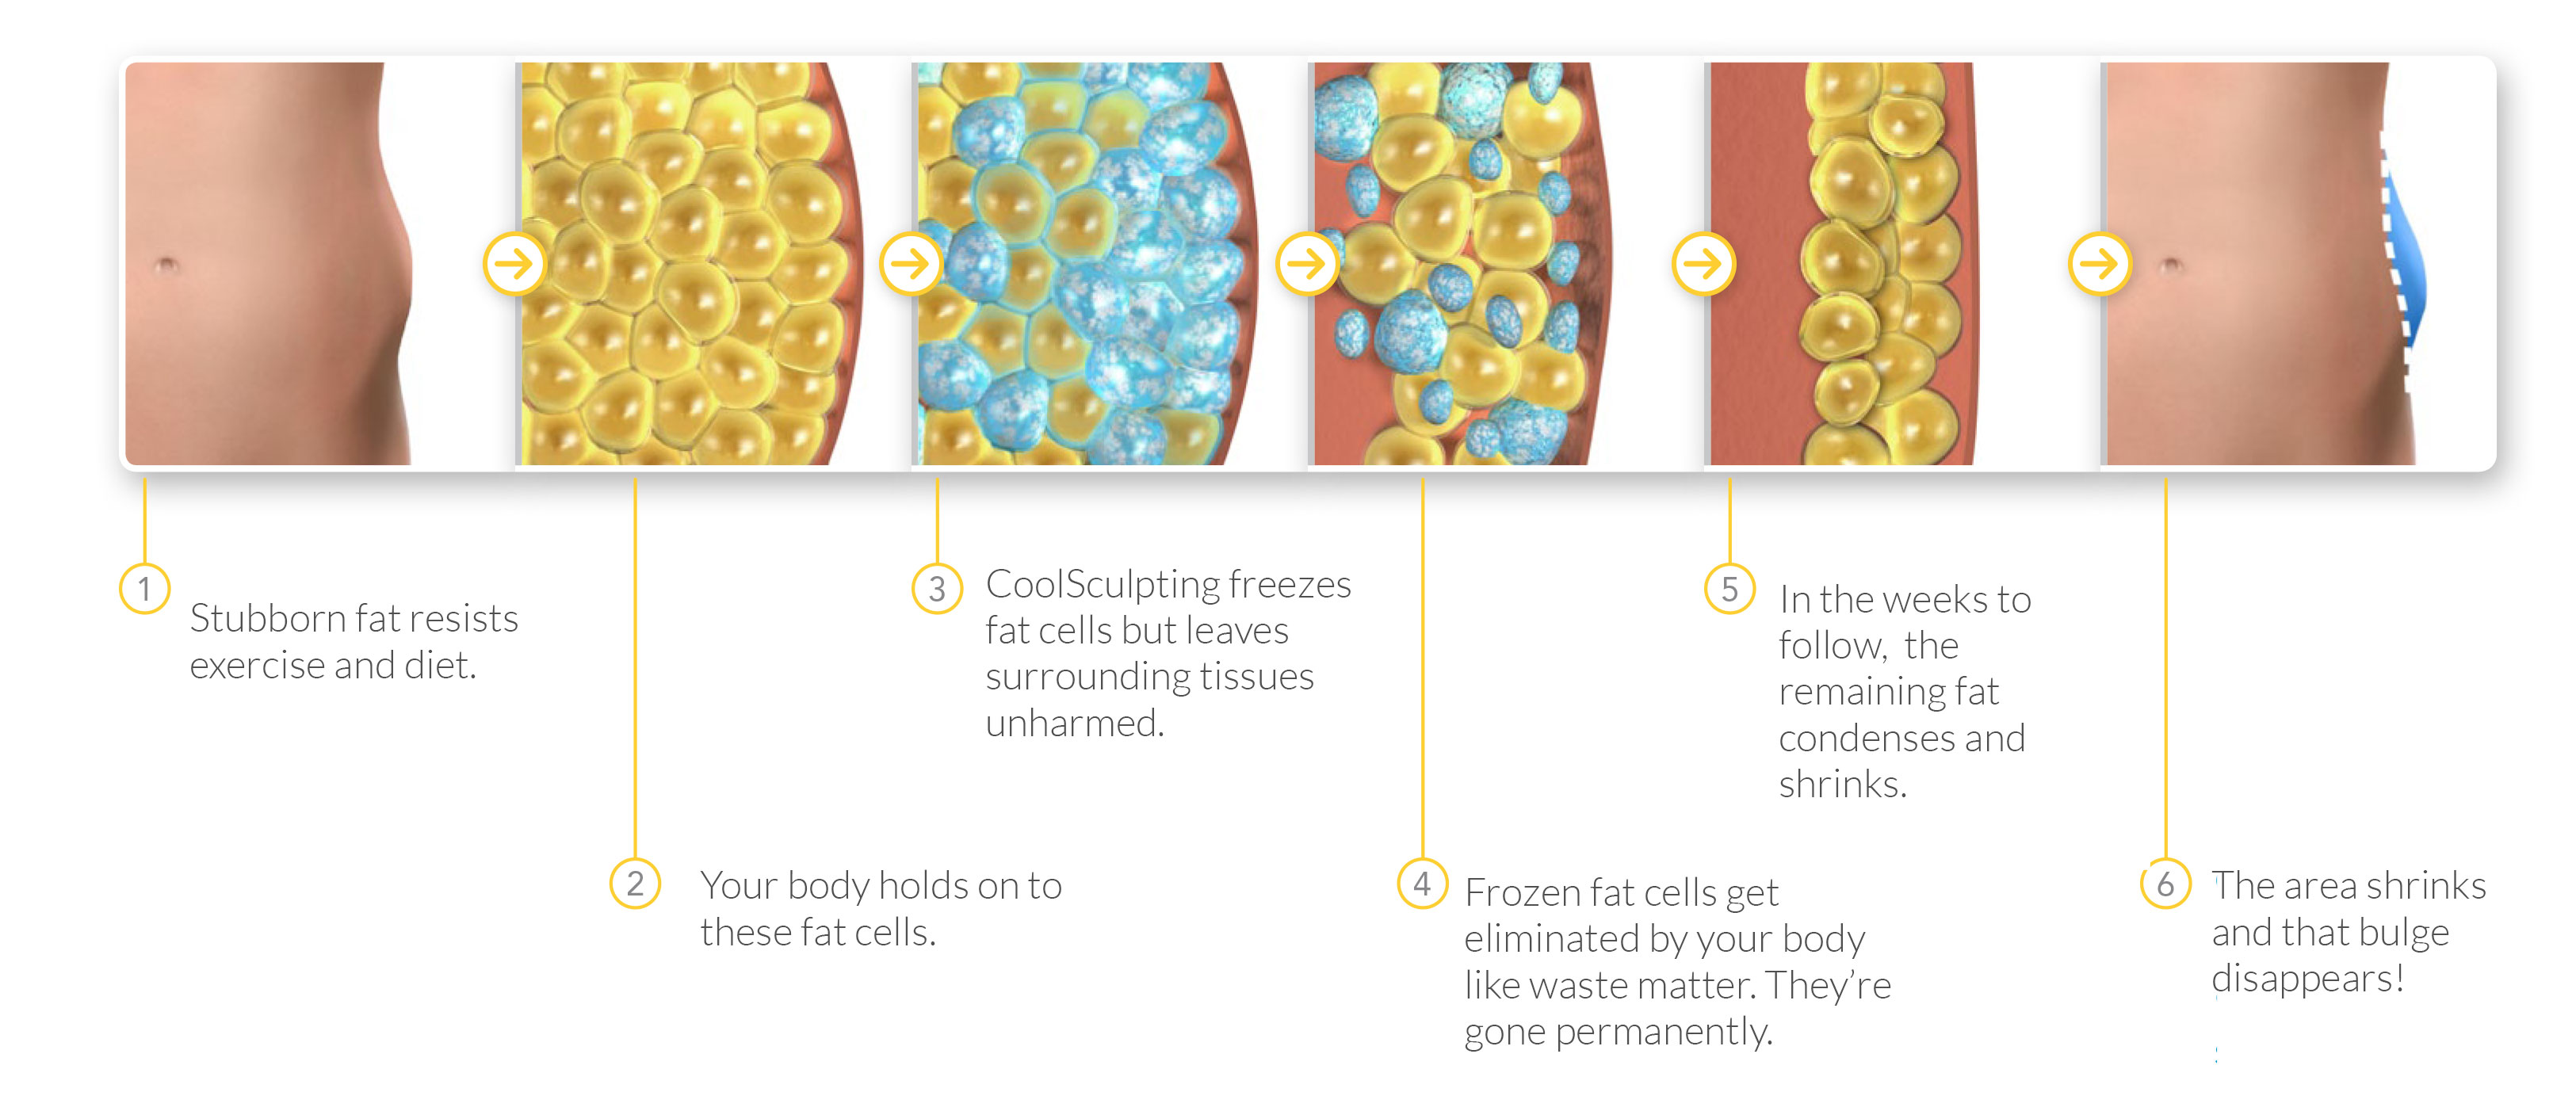 How-Coolsculpting-Works-diagram